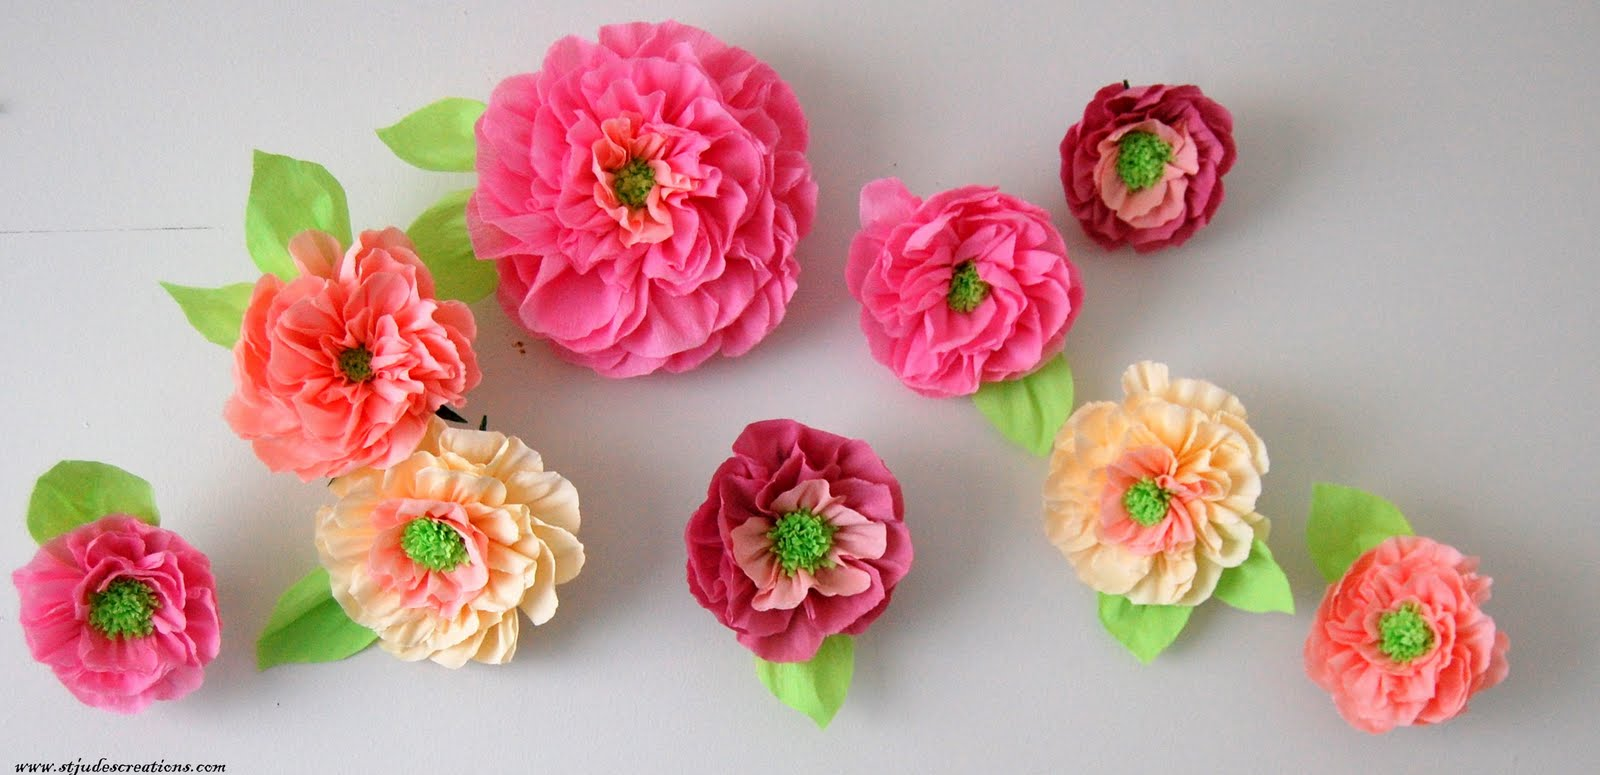 Pottery Barn inspired wall paper flowers kids room decor ... - photo#7